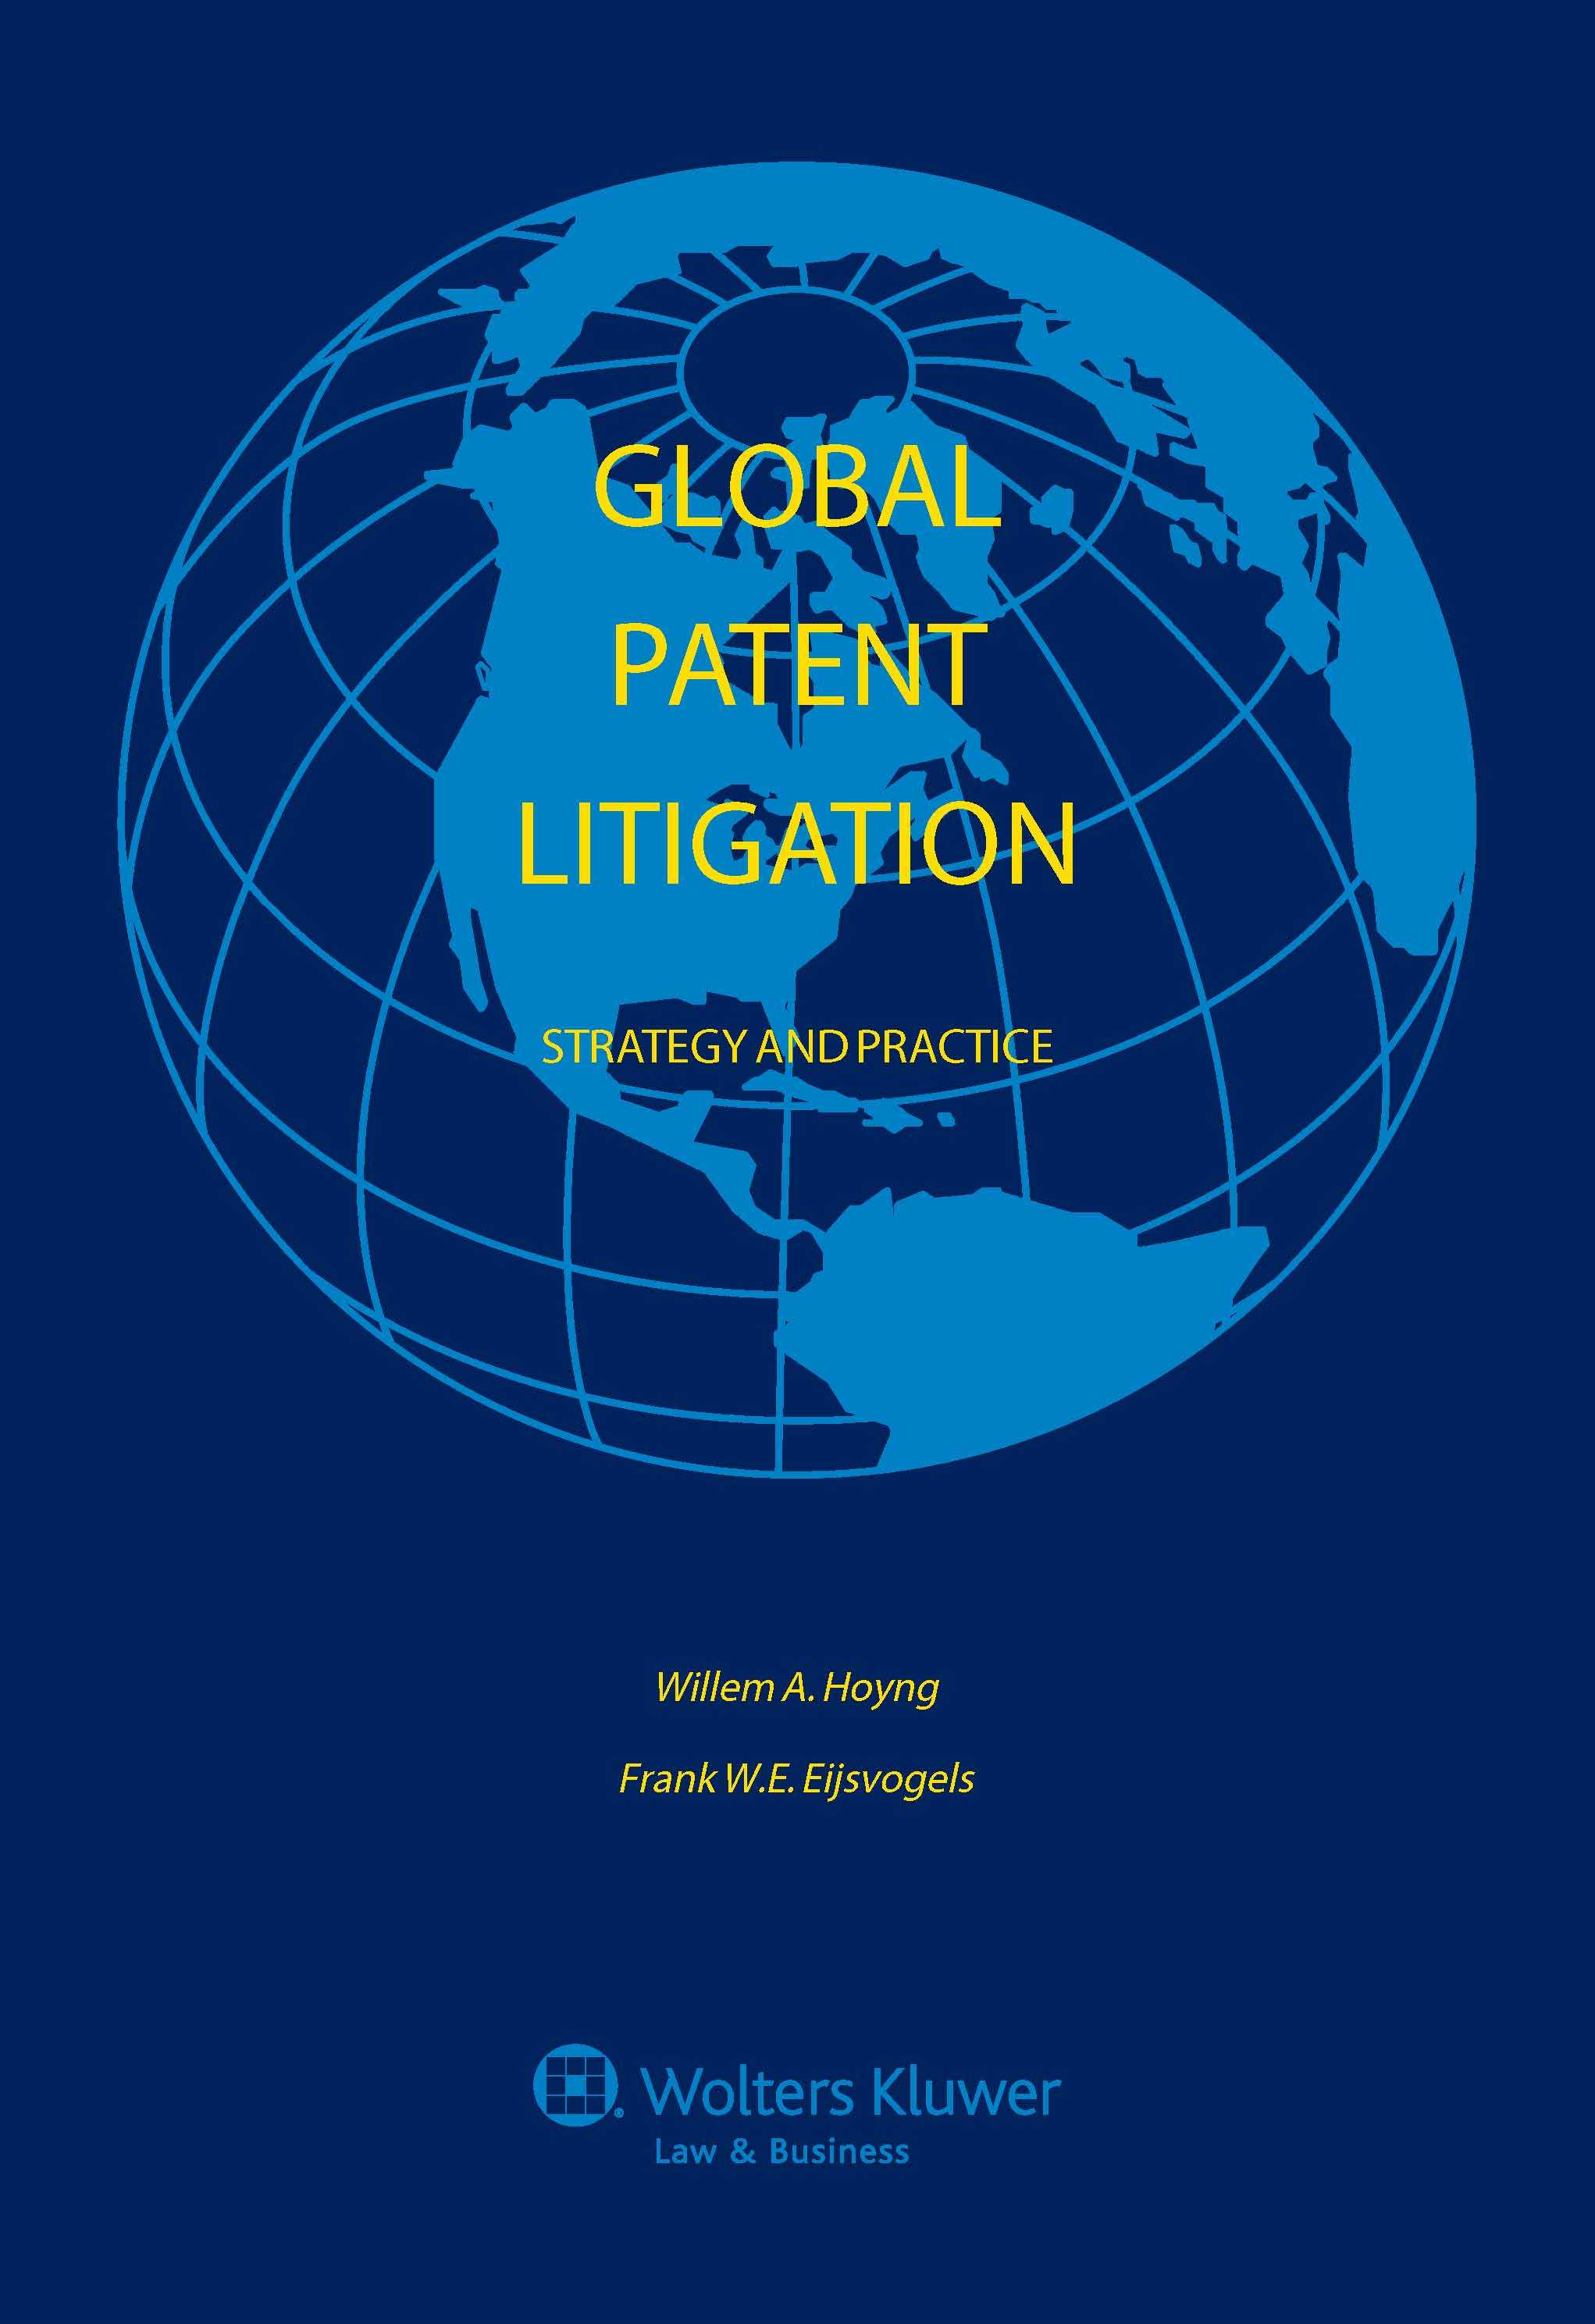 Global Patent Litigation: Strategy and Practice